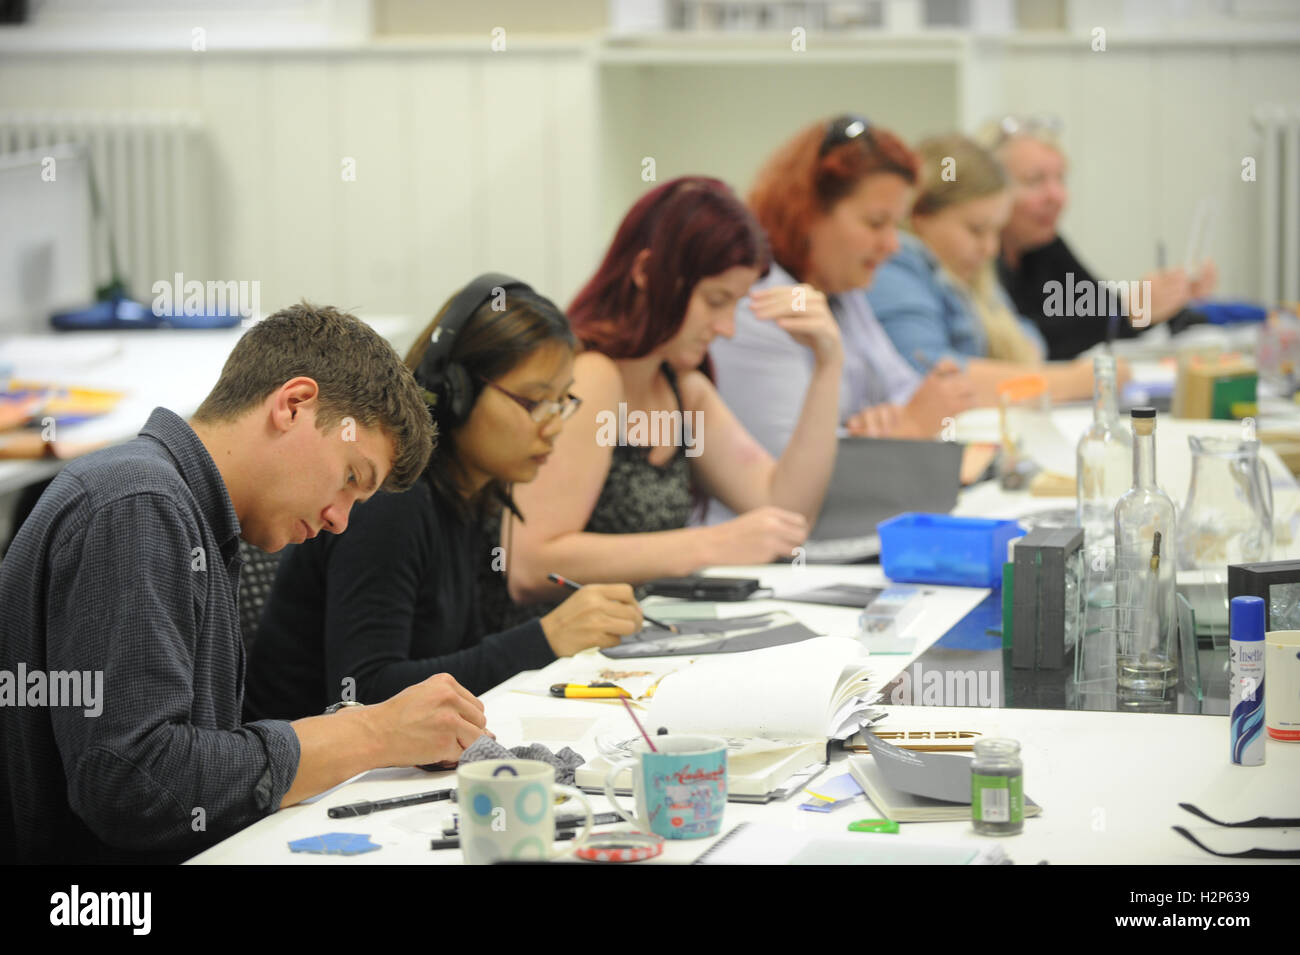 College students get their heads down and work hard on their education in a college classroom. - Stock Image